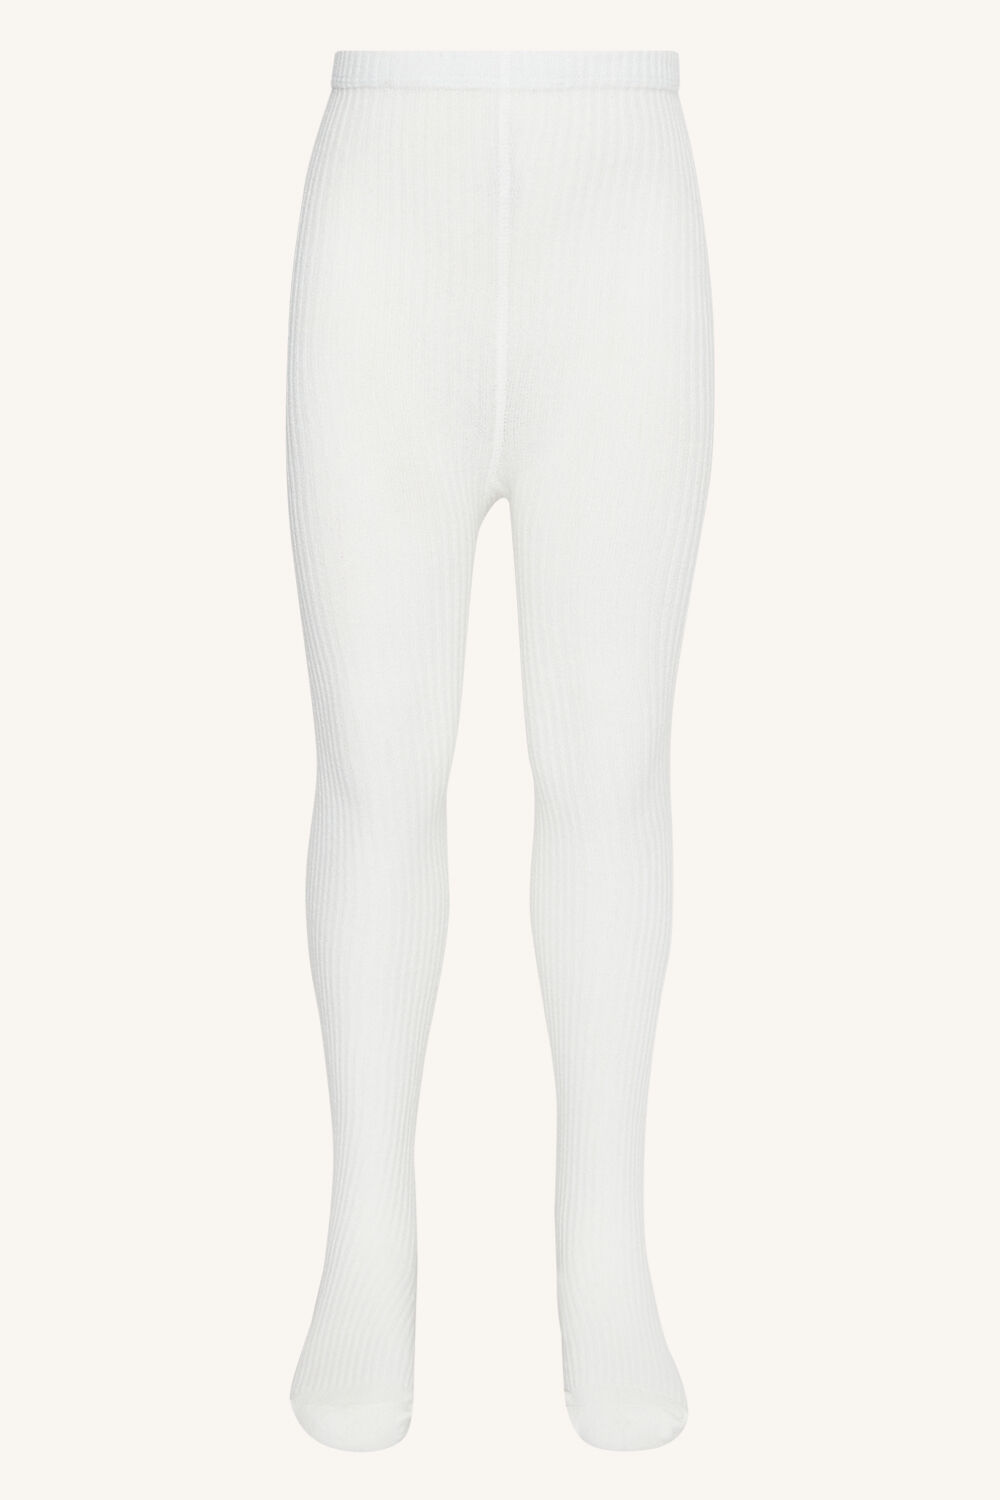 GIRLS RIBBED TIGHTS in colour CLOUD DANCER